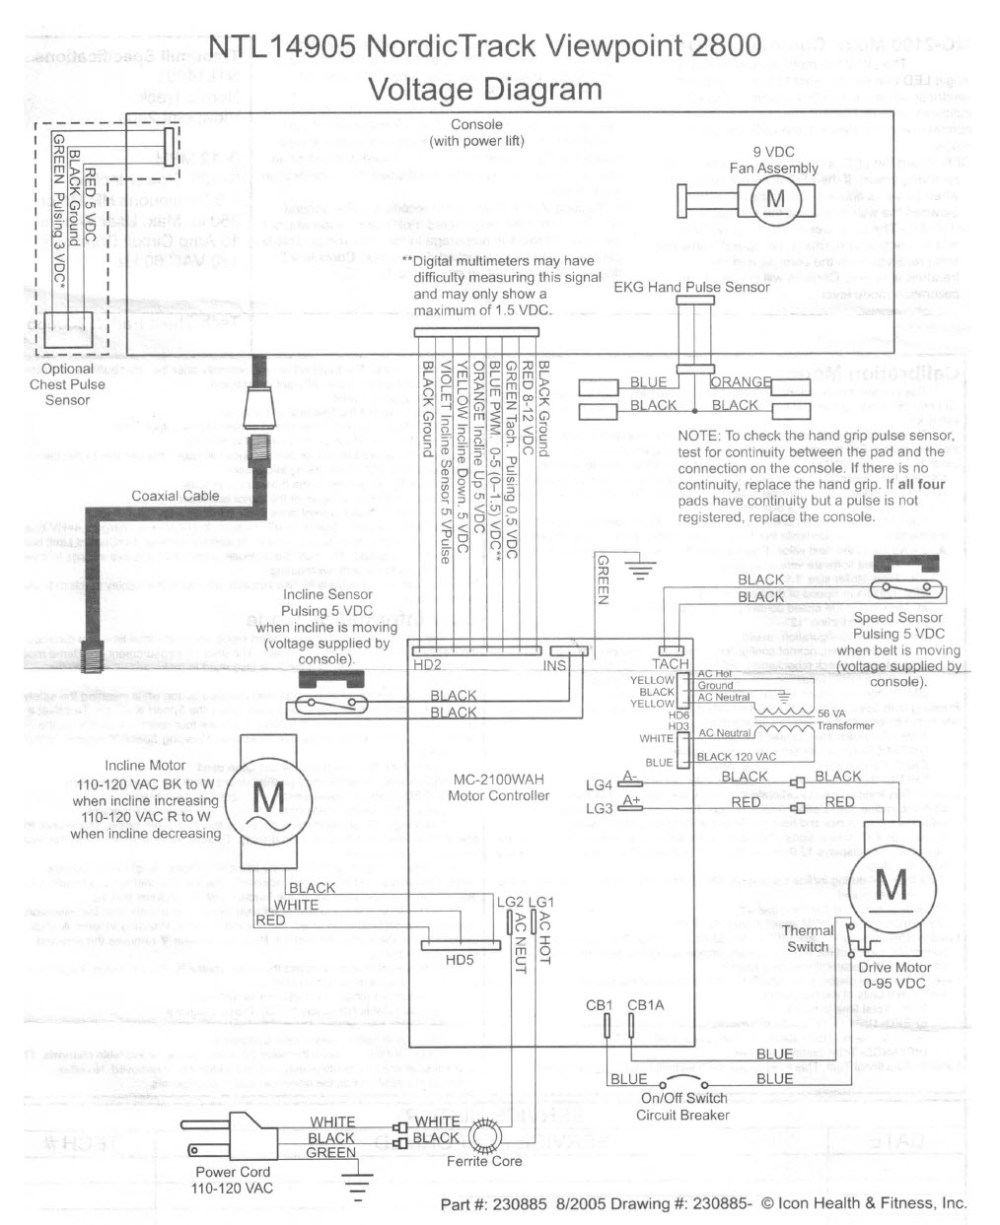 medium resolution of voltage diagram that came with the nordictrack viewpoint 2800 treadmill